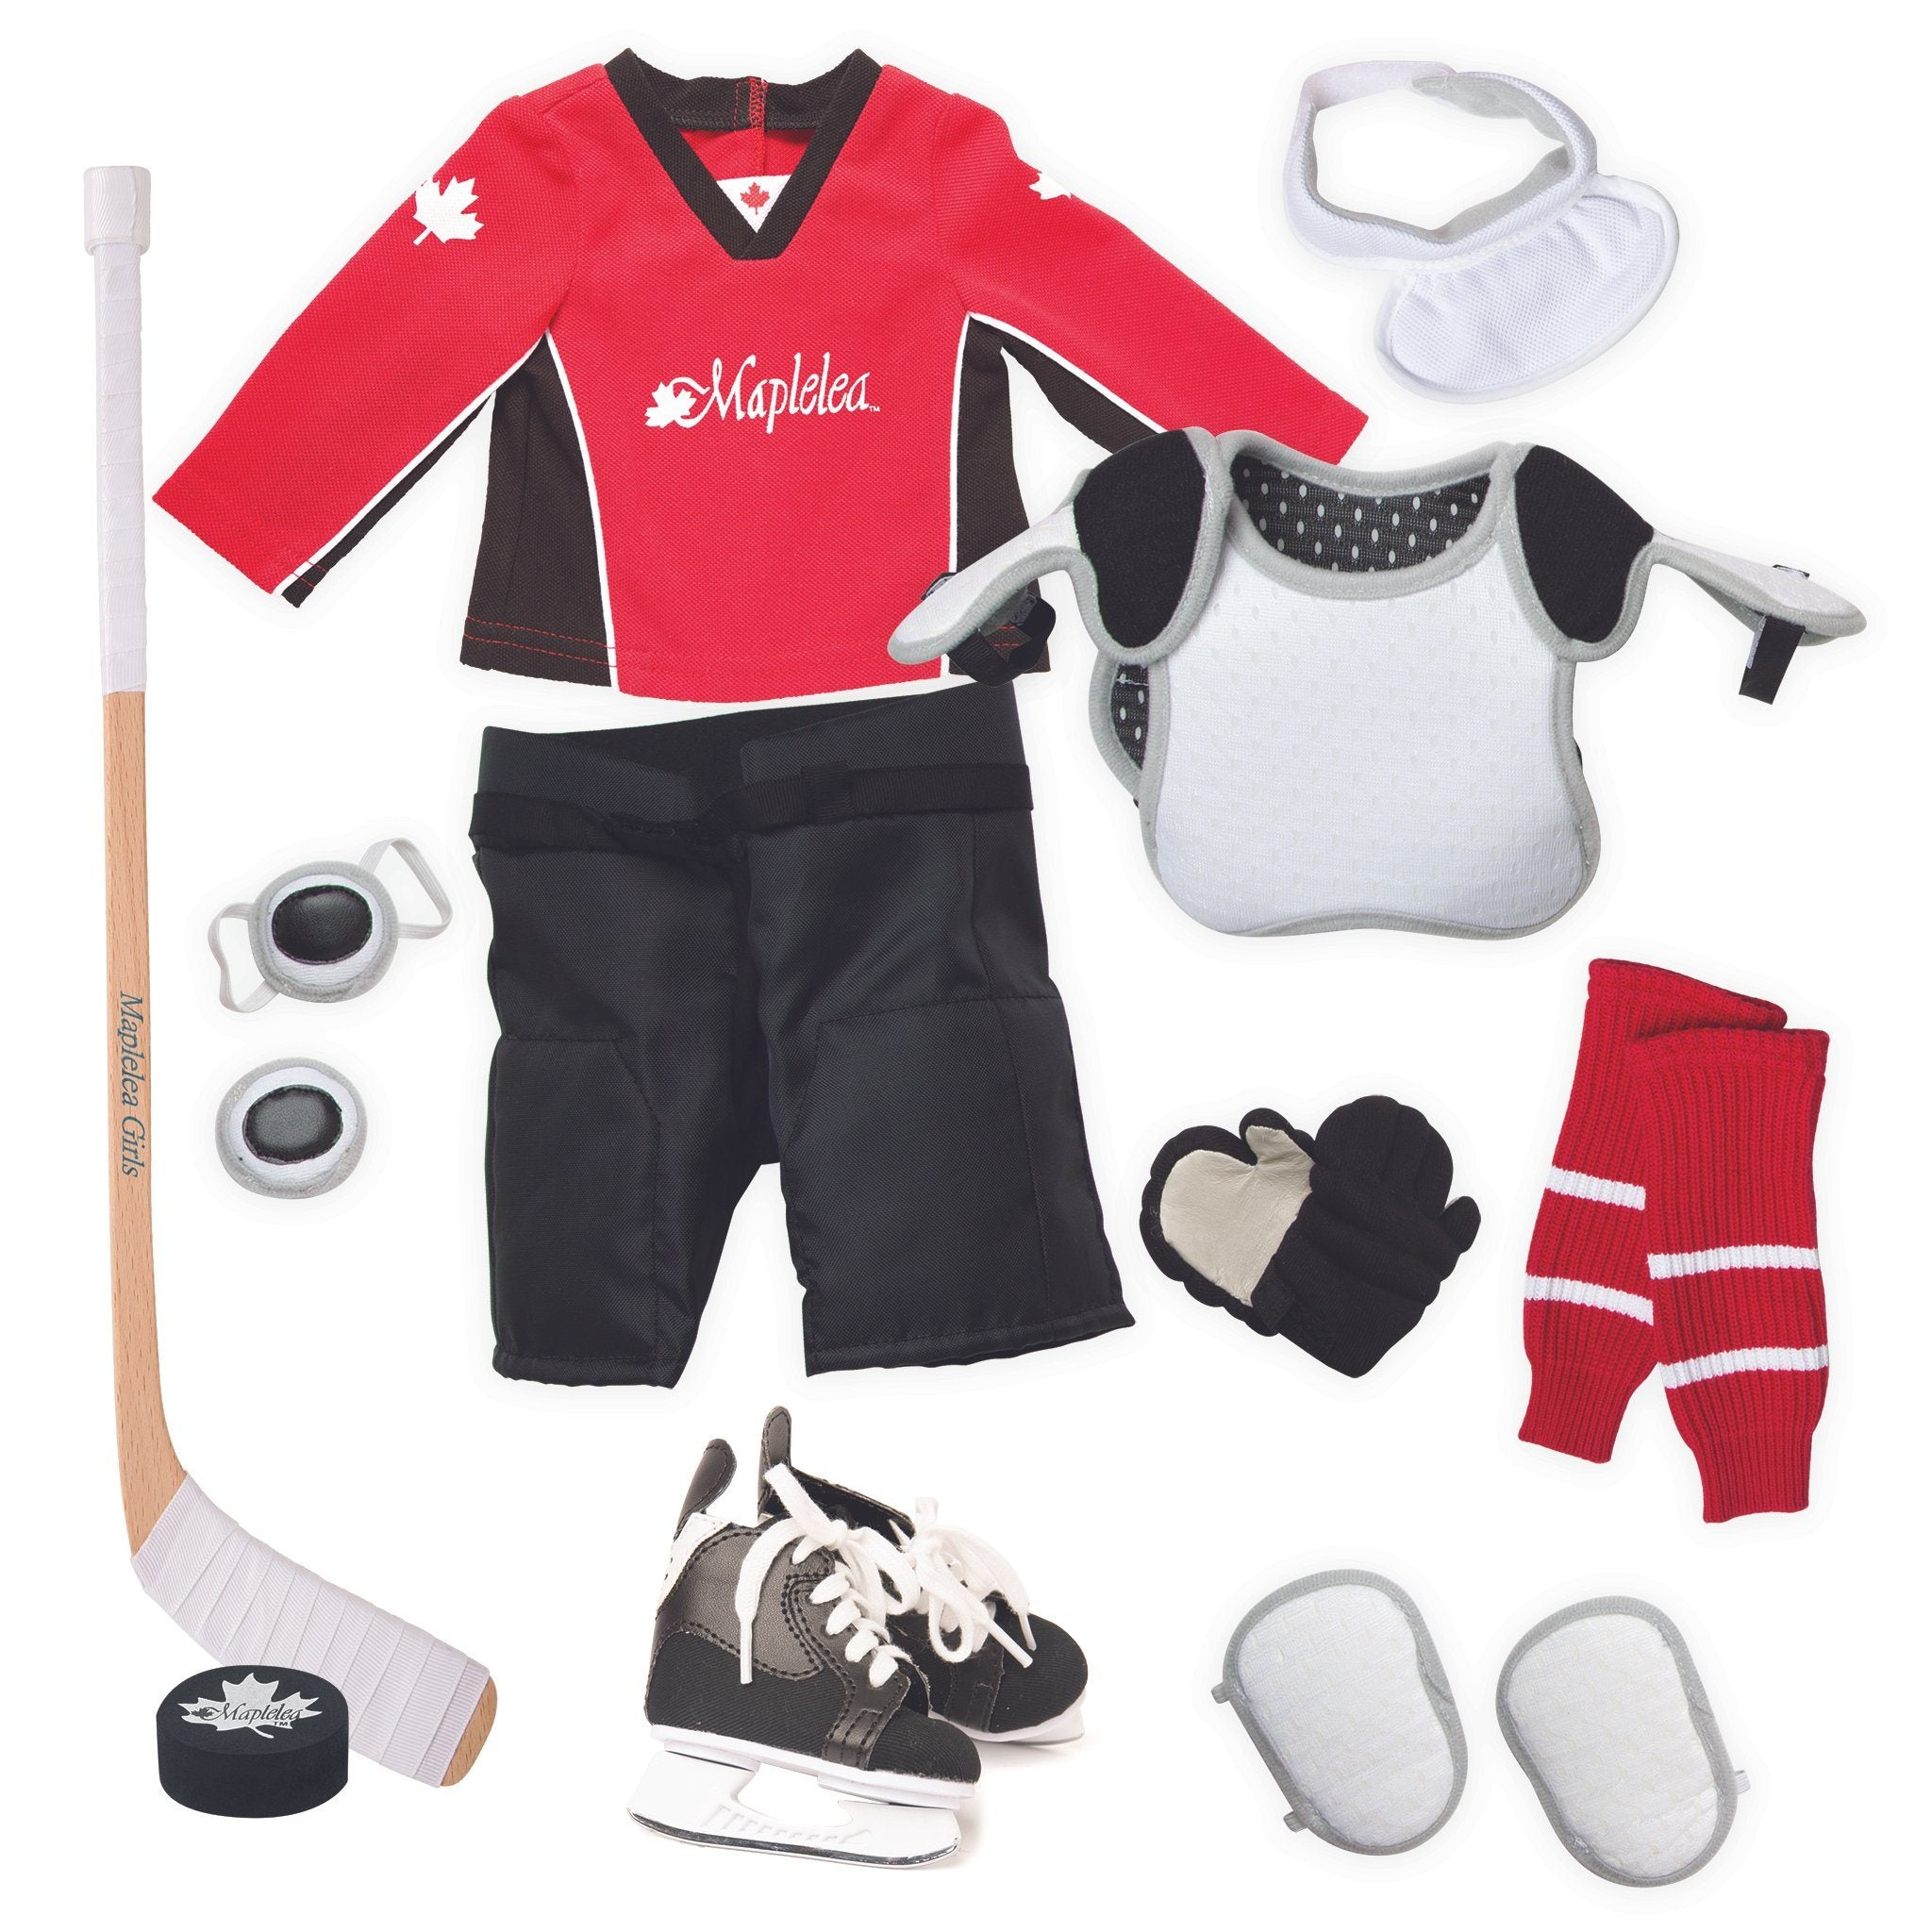 Hockey set red hockey jersey, black hockey shorts, shin pads, shoulder pads, socks, skates, hockey stick, puck, neck guard and gloves. \Fits all 18 inch dolls.